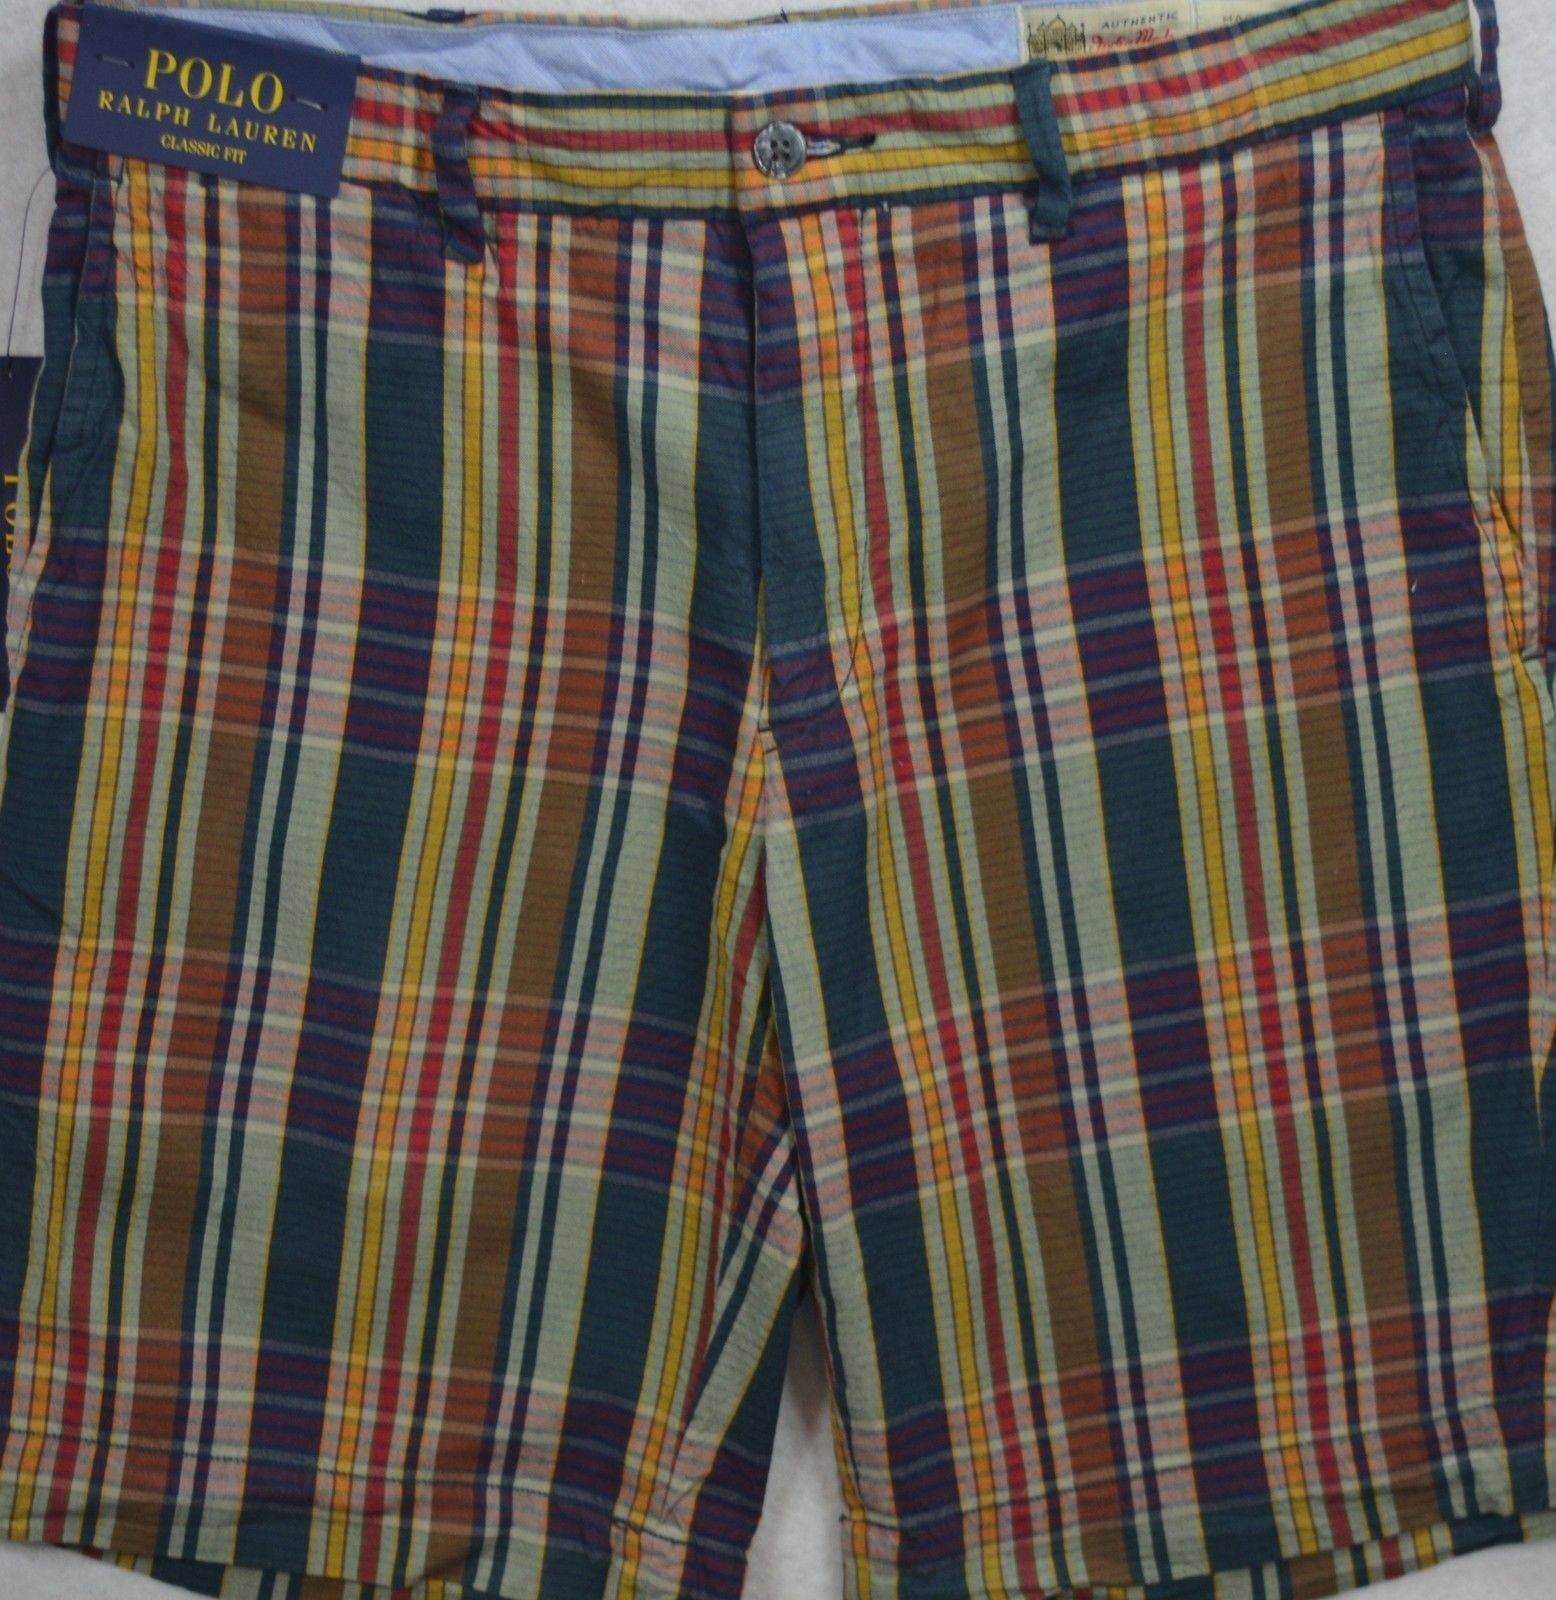 Polo Ralph Lauren Classic Fit India Madras Plaid Shorts Size 36 & 40 NWT